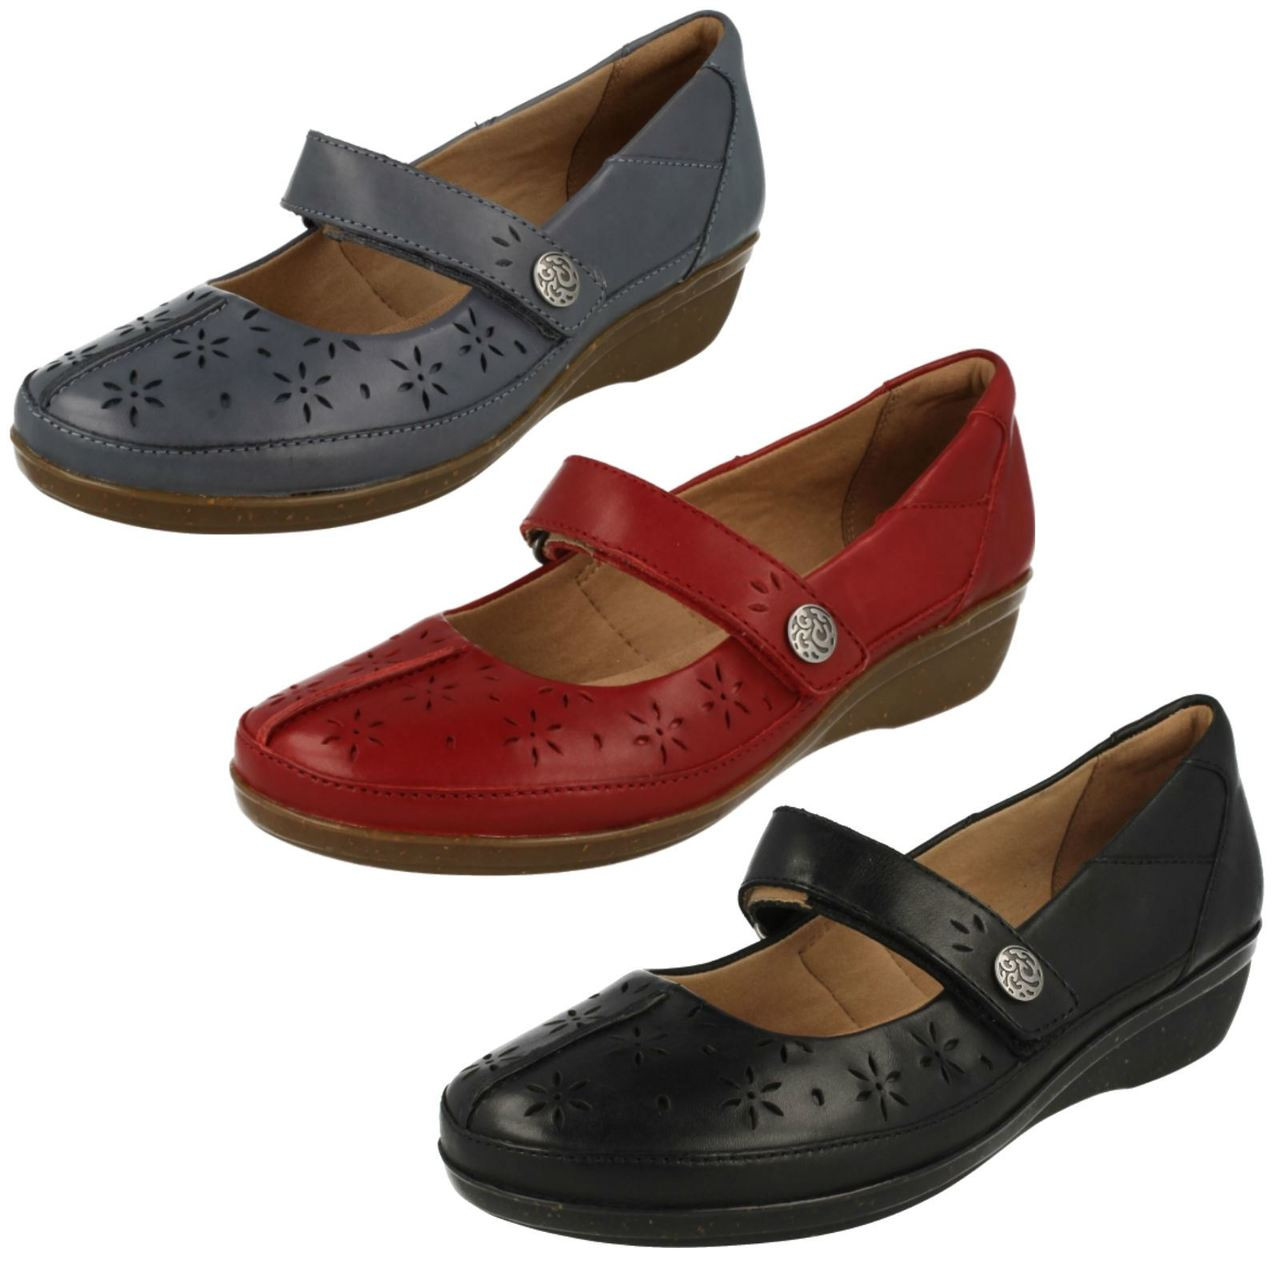 Ladies Clarks Cushion Soft Casual Shoes